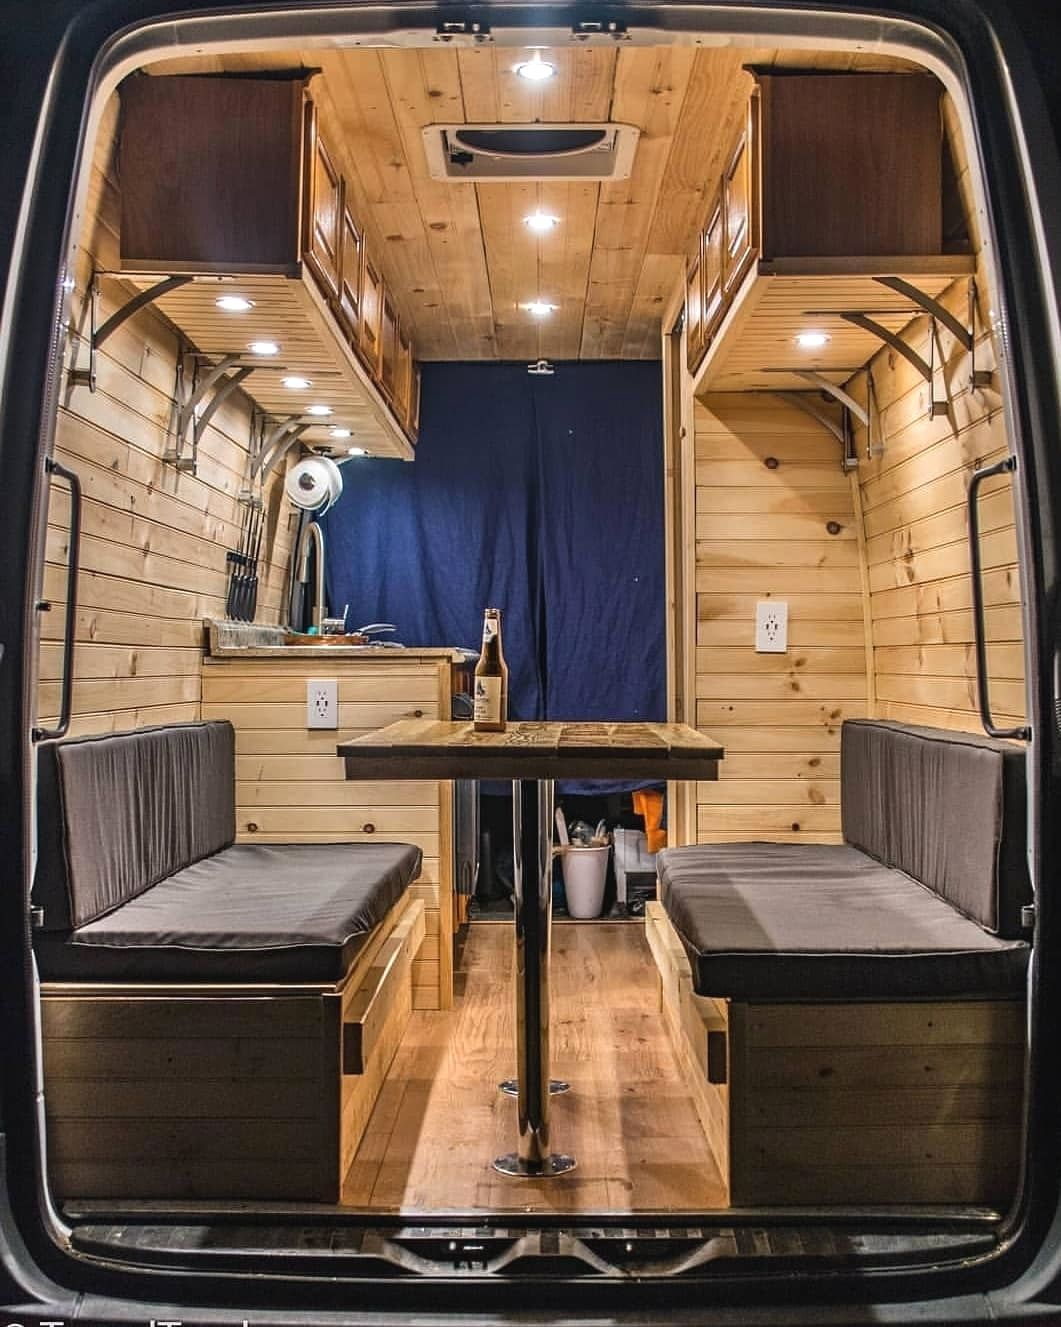 Beautiful wooden interior theprojectvanlife seattle